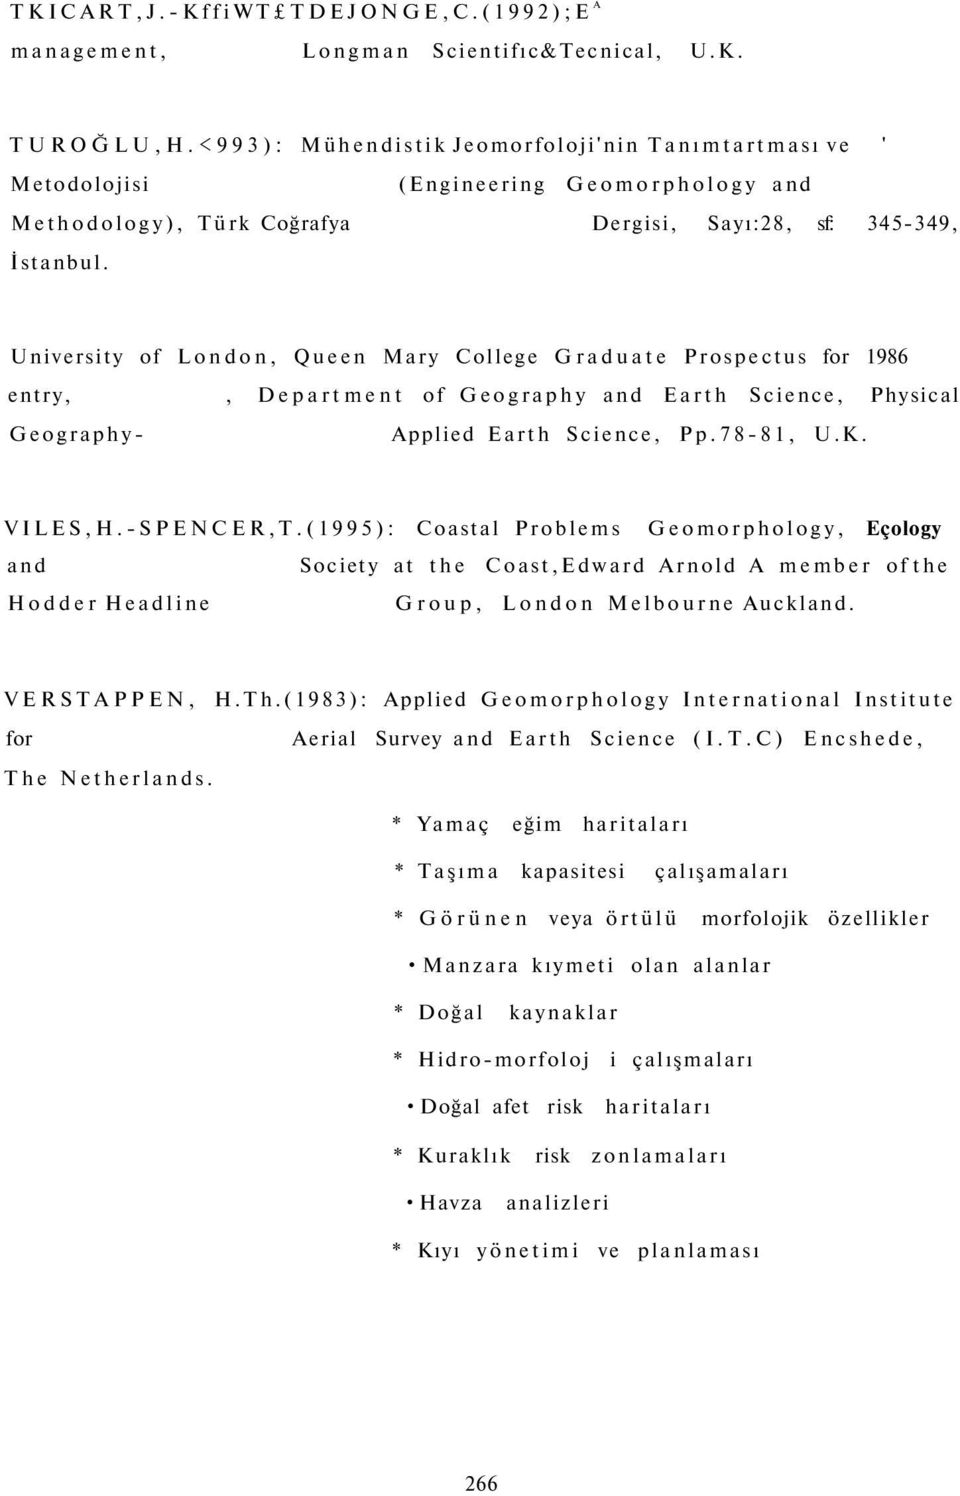 University of London, Queen Mary College Graduate Prospectus for 1986 entry,, Department of Geography and Earth Science, Physical Geography- Applied Earth Science, Pp.78-81, U.K. VILES,H.-SPENCER,T.